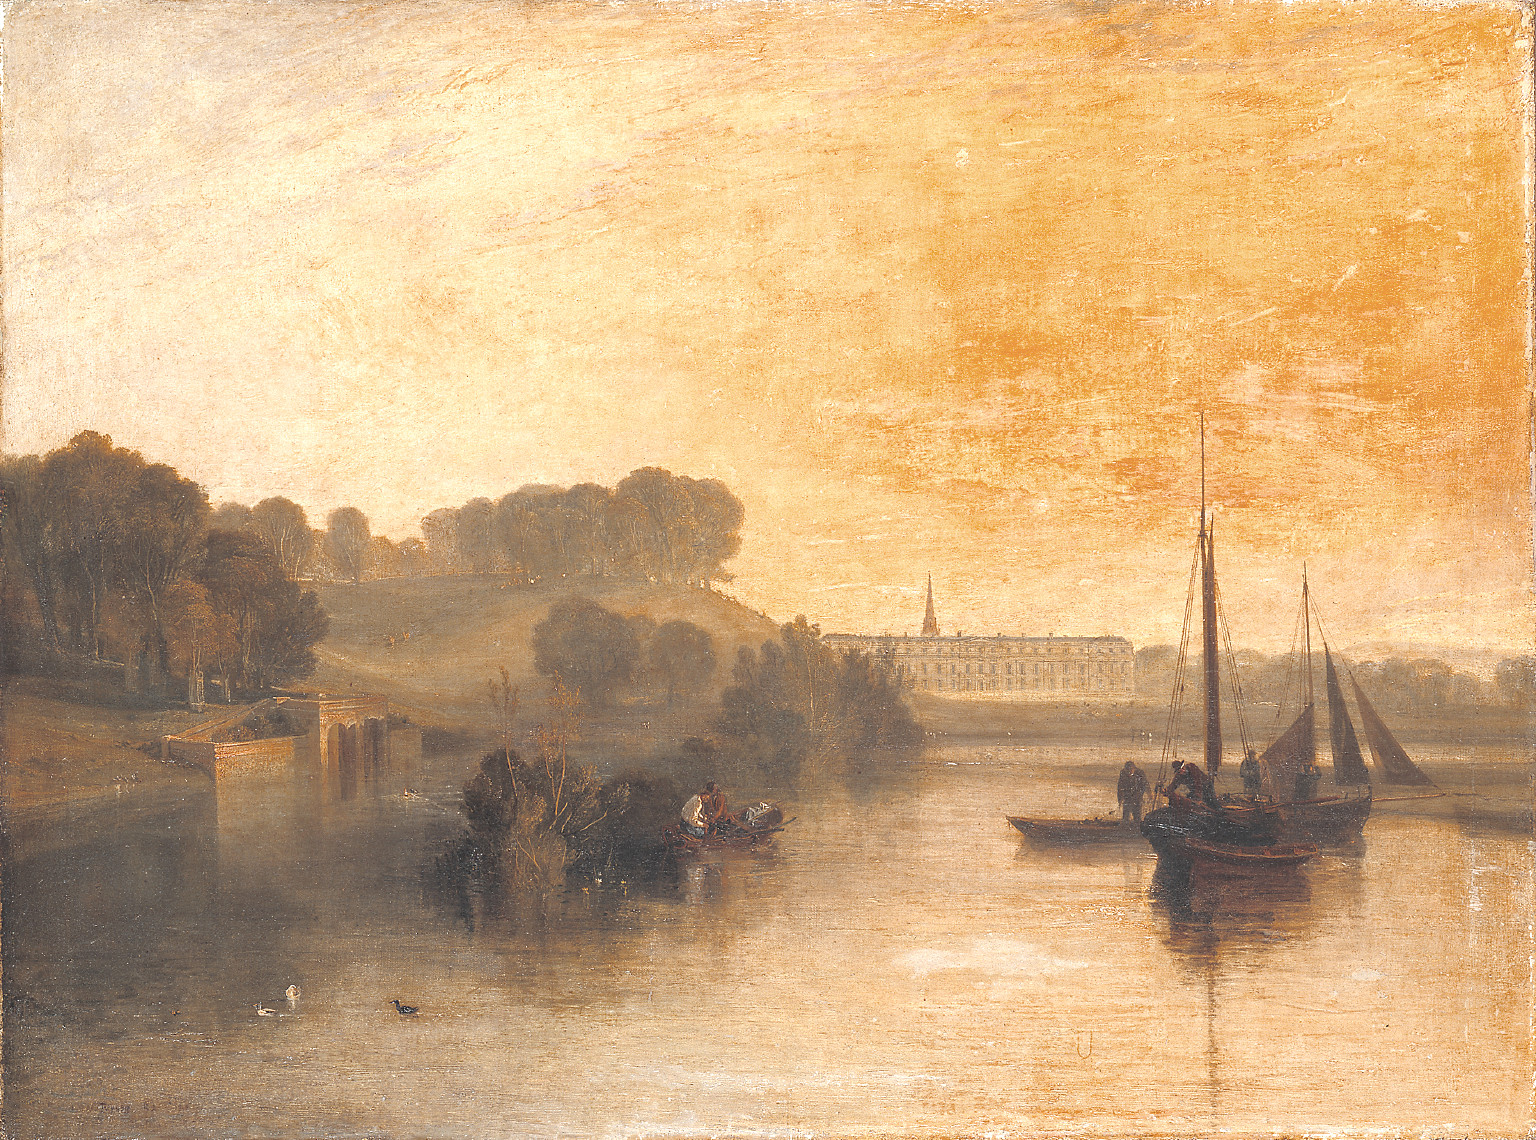 Petworth, Sussex, the Seat of the Earl of Egremont: Dewy Morning exhibited 1810